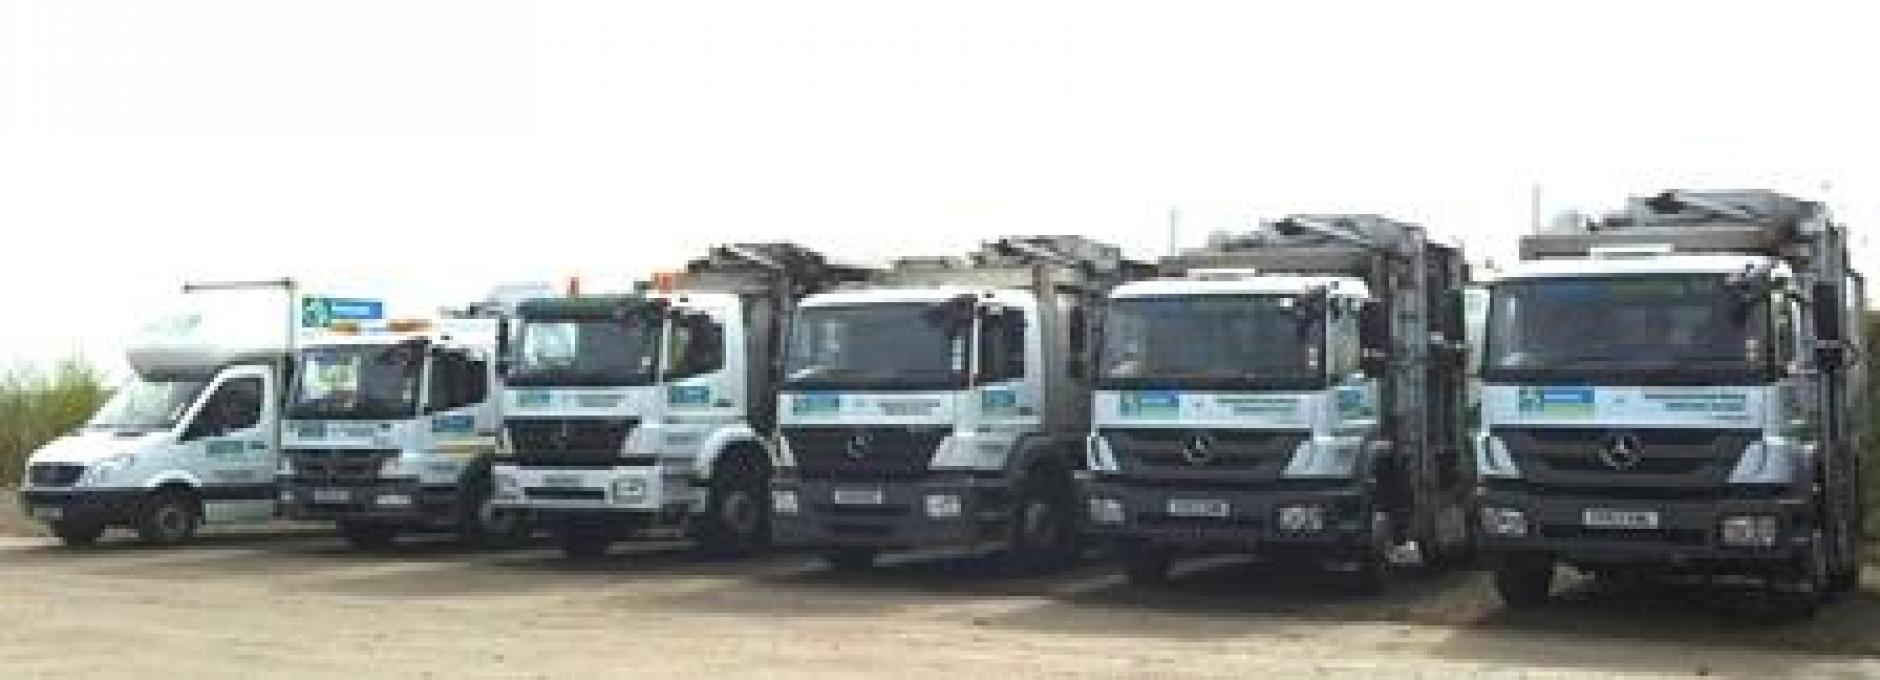 Keenan recycling orders two mercedes antos commercial motor for Keenan motors mercedes benz